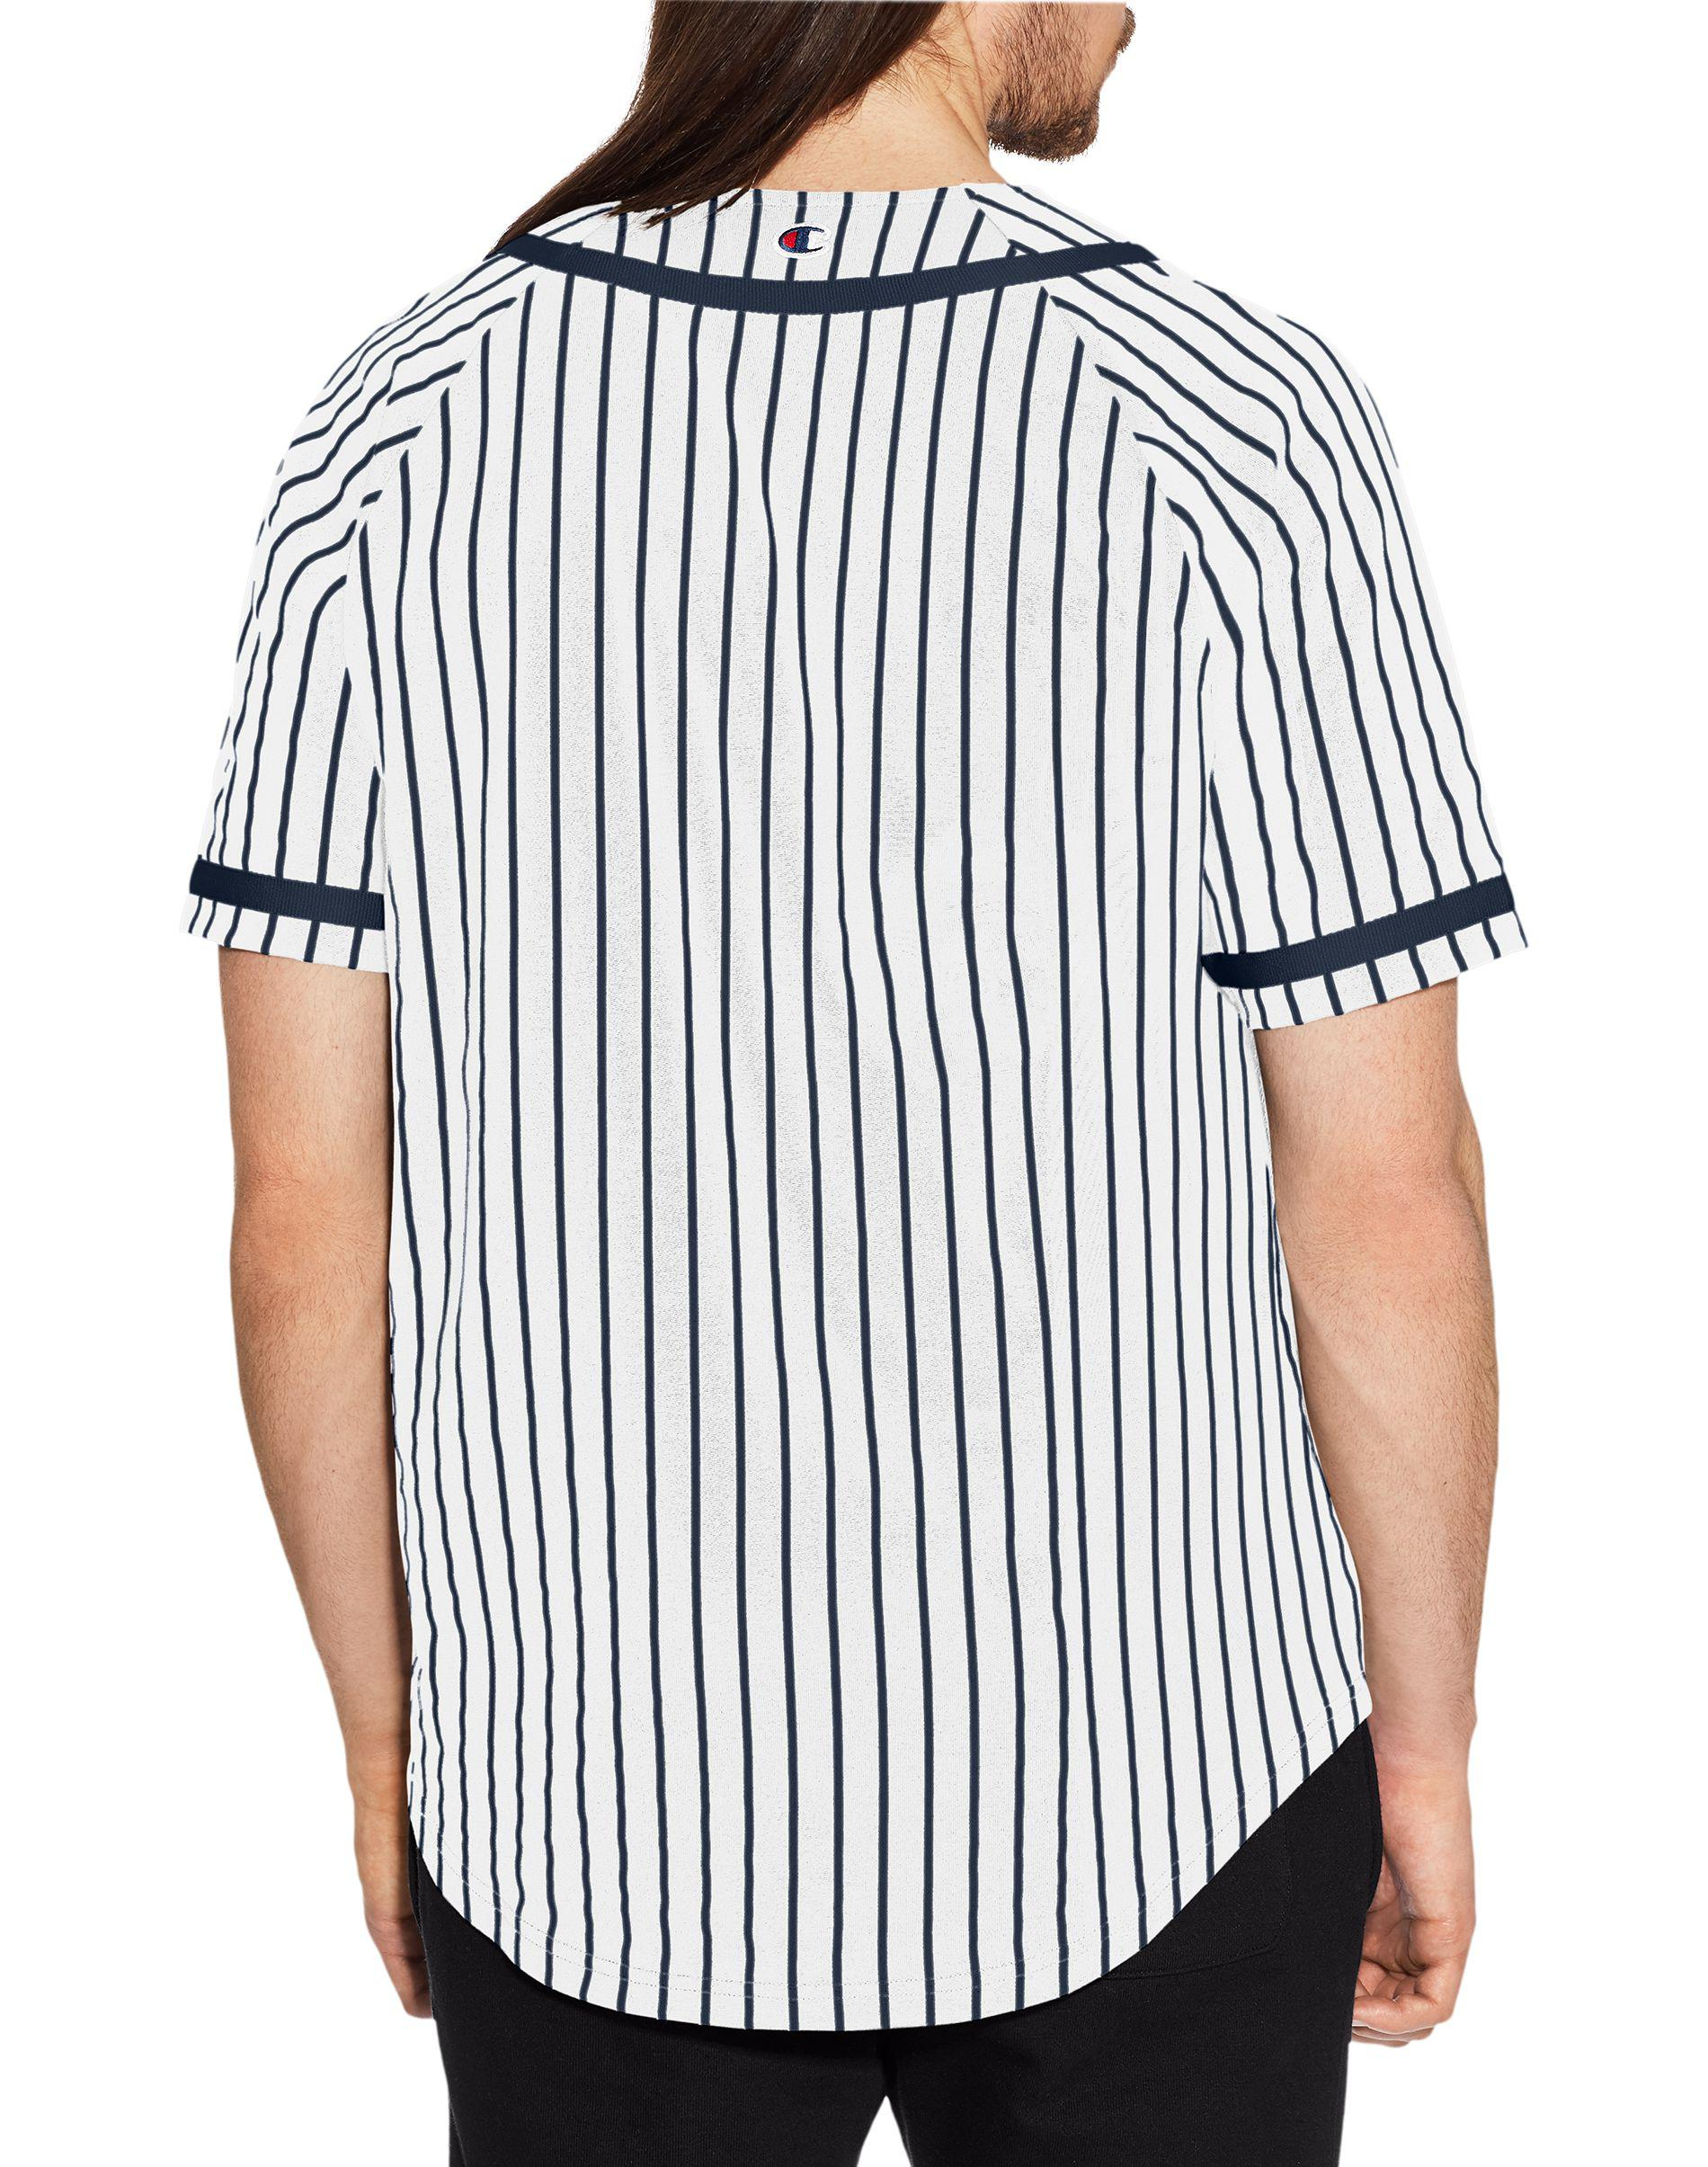 426214dedd92 Champion Life® Stripe Braided Baseball Jersey in Blue for Men - Lyst